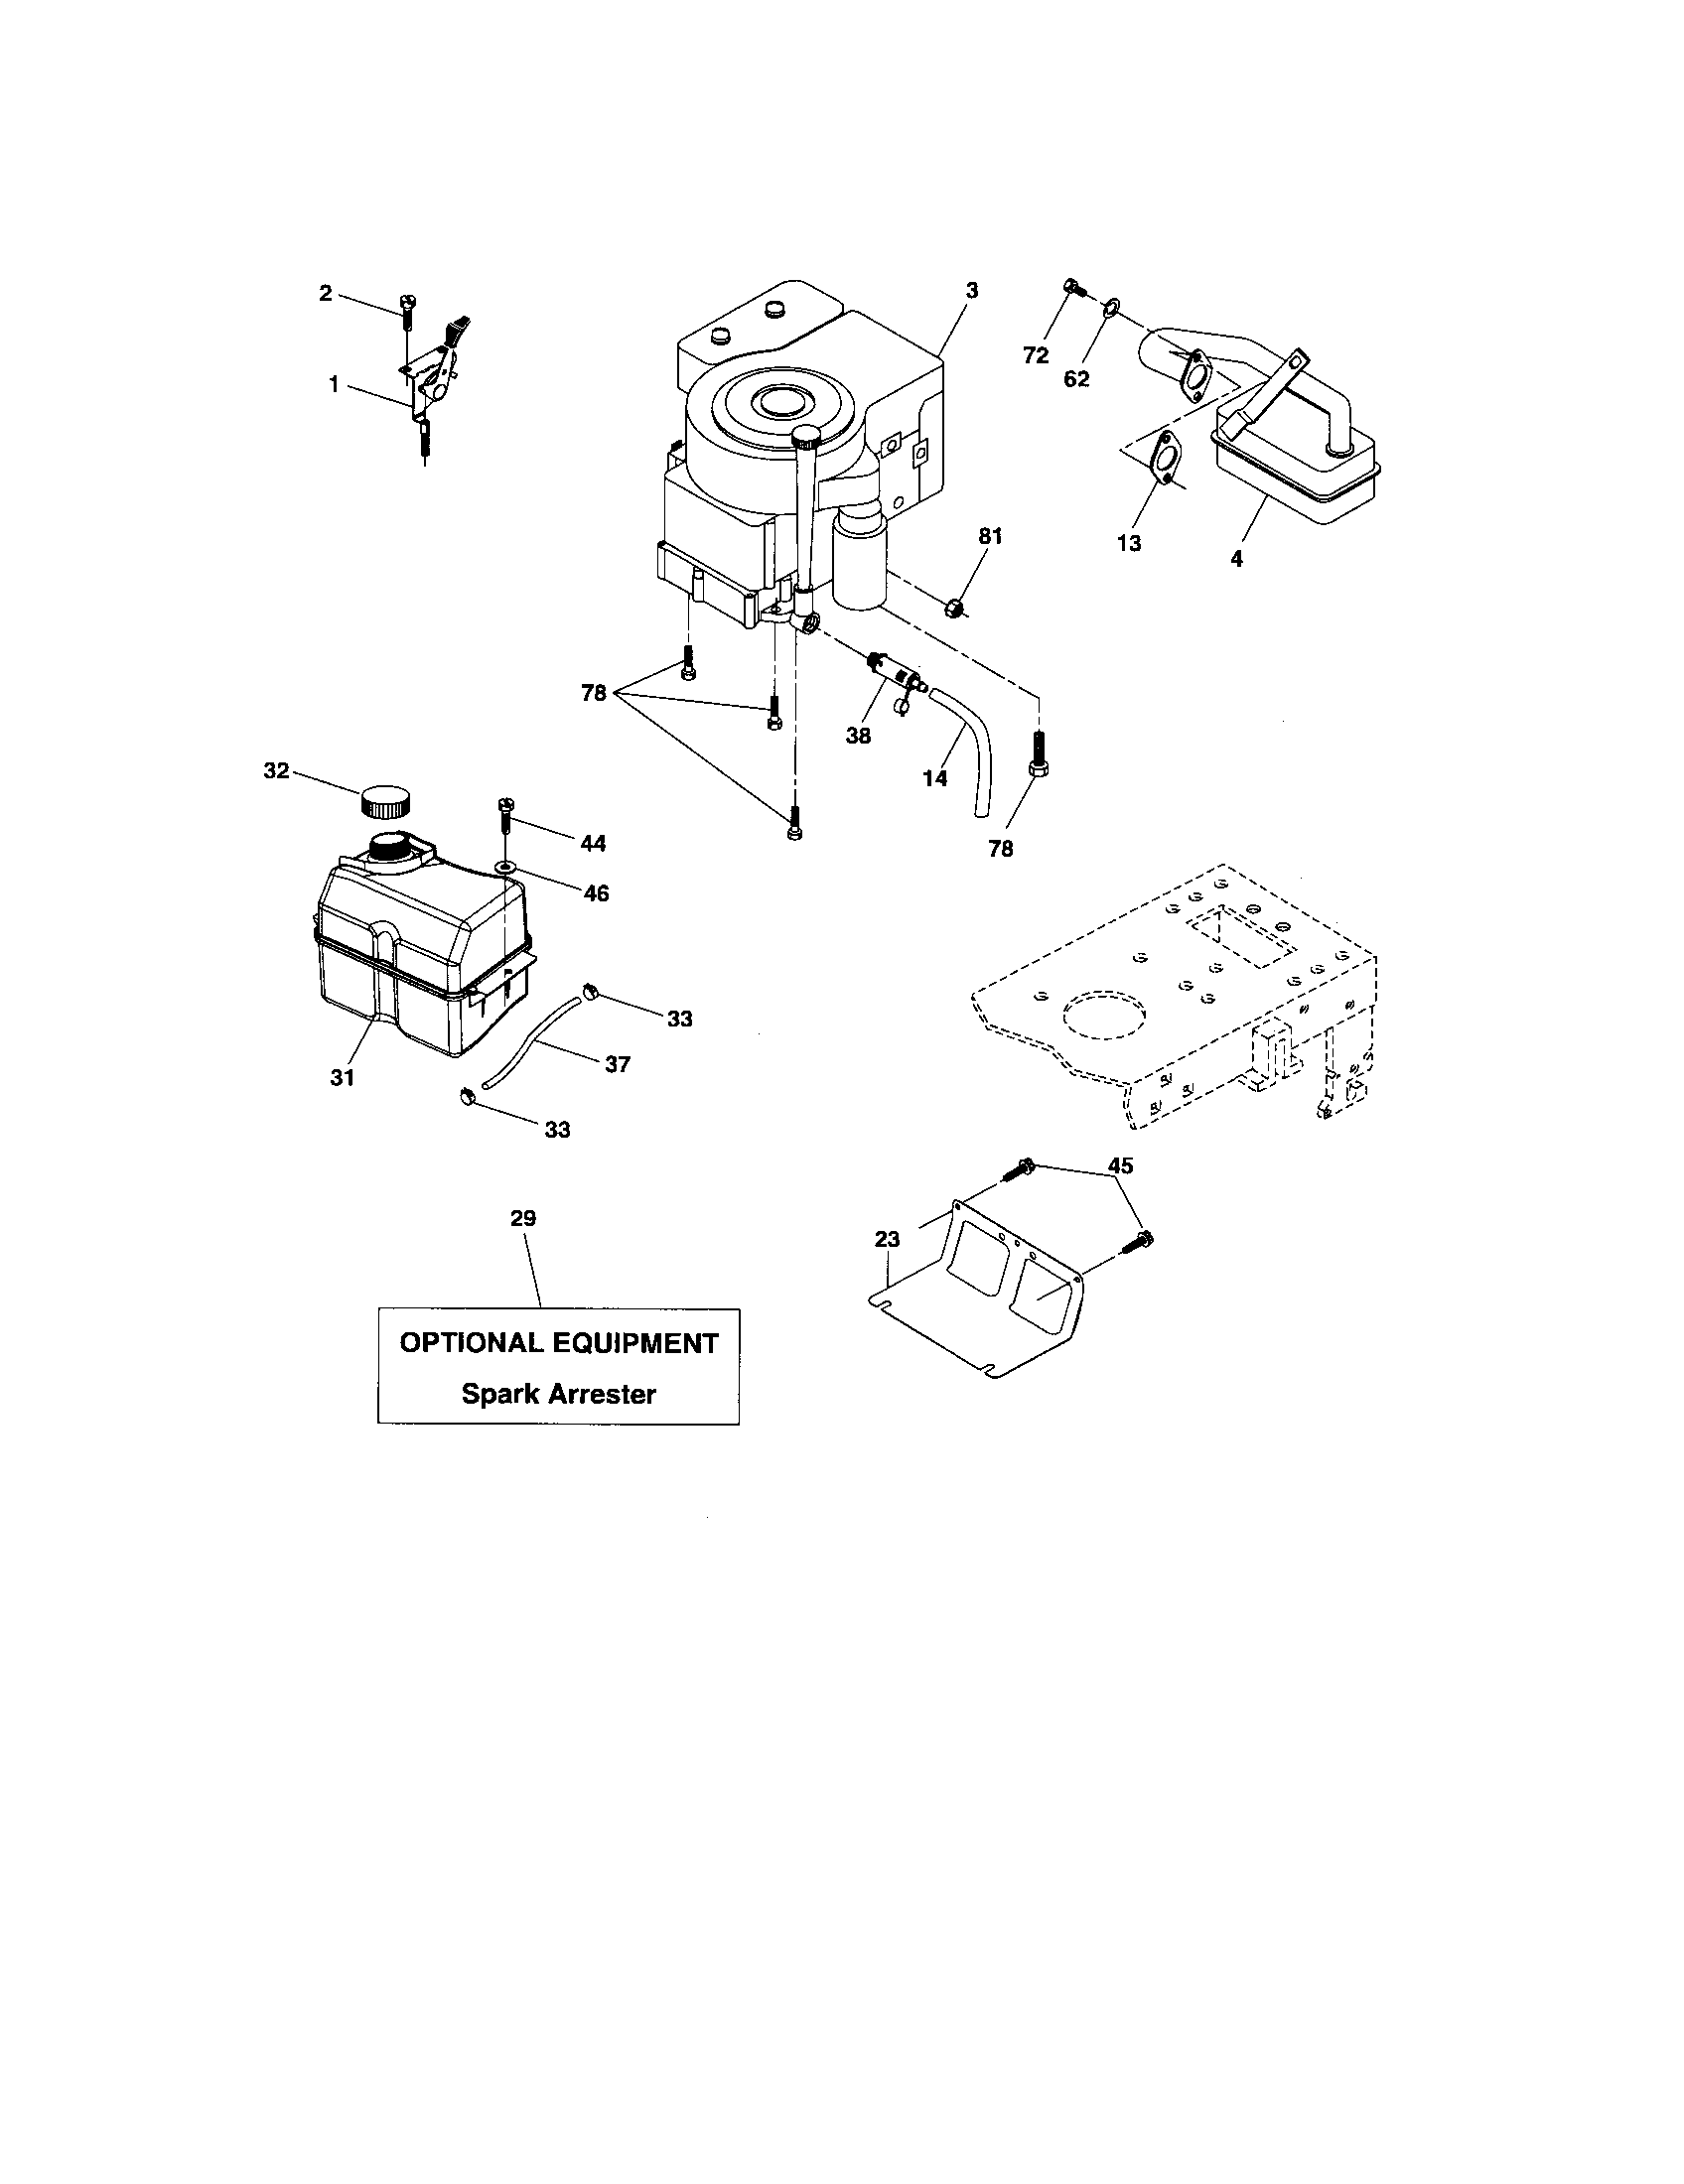 Craftsman model 917276826 lawn, tractor genuine parts